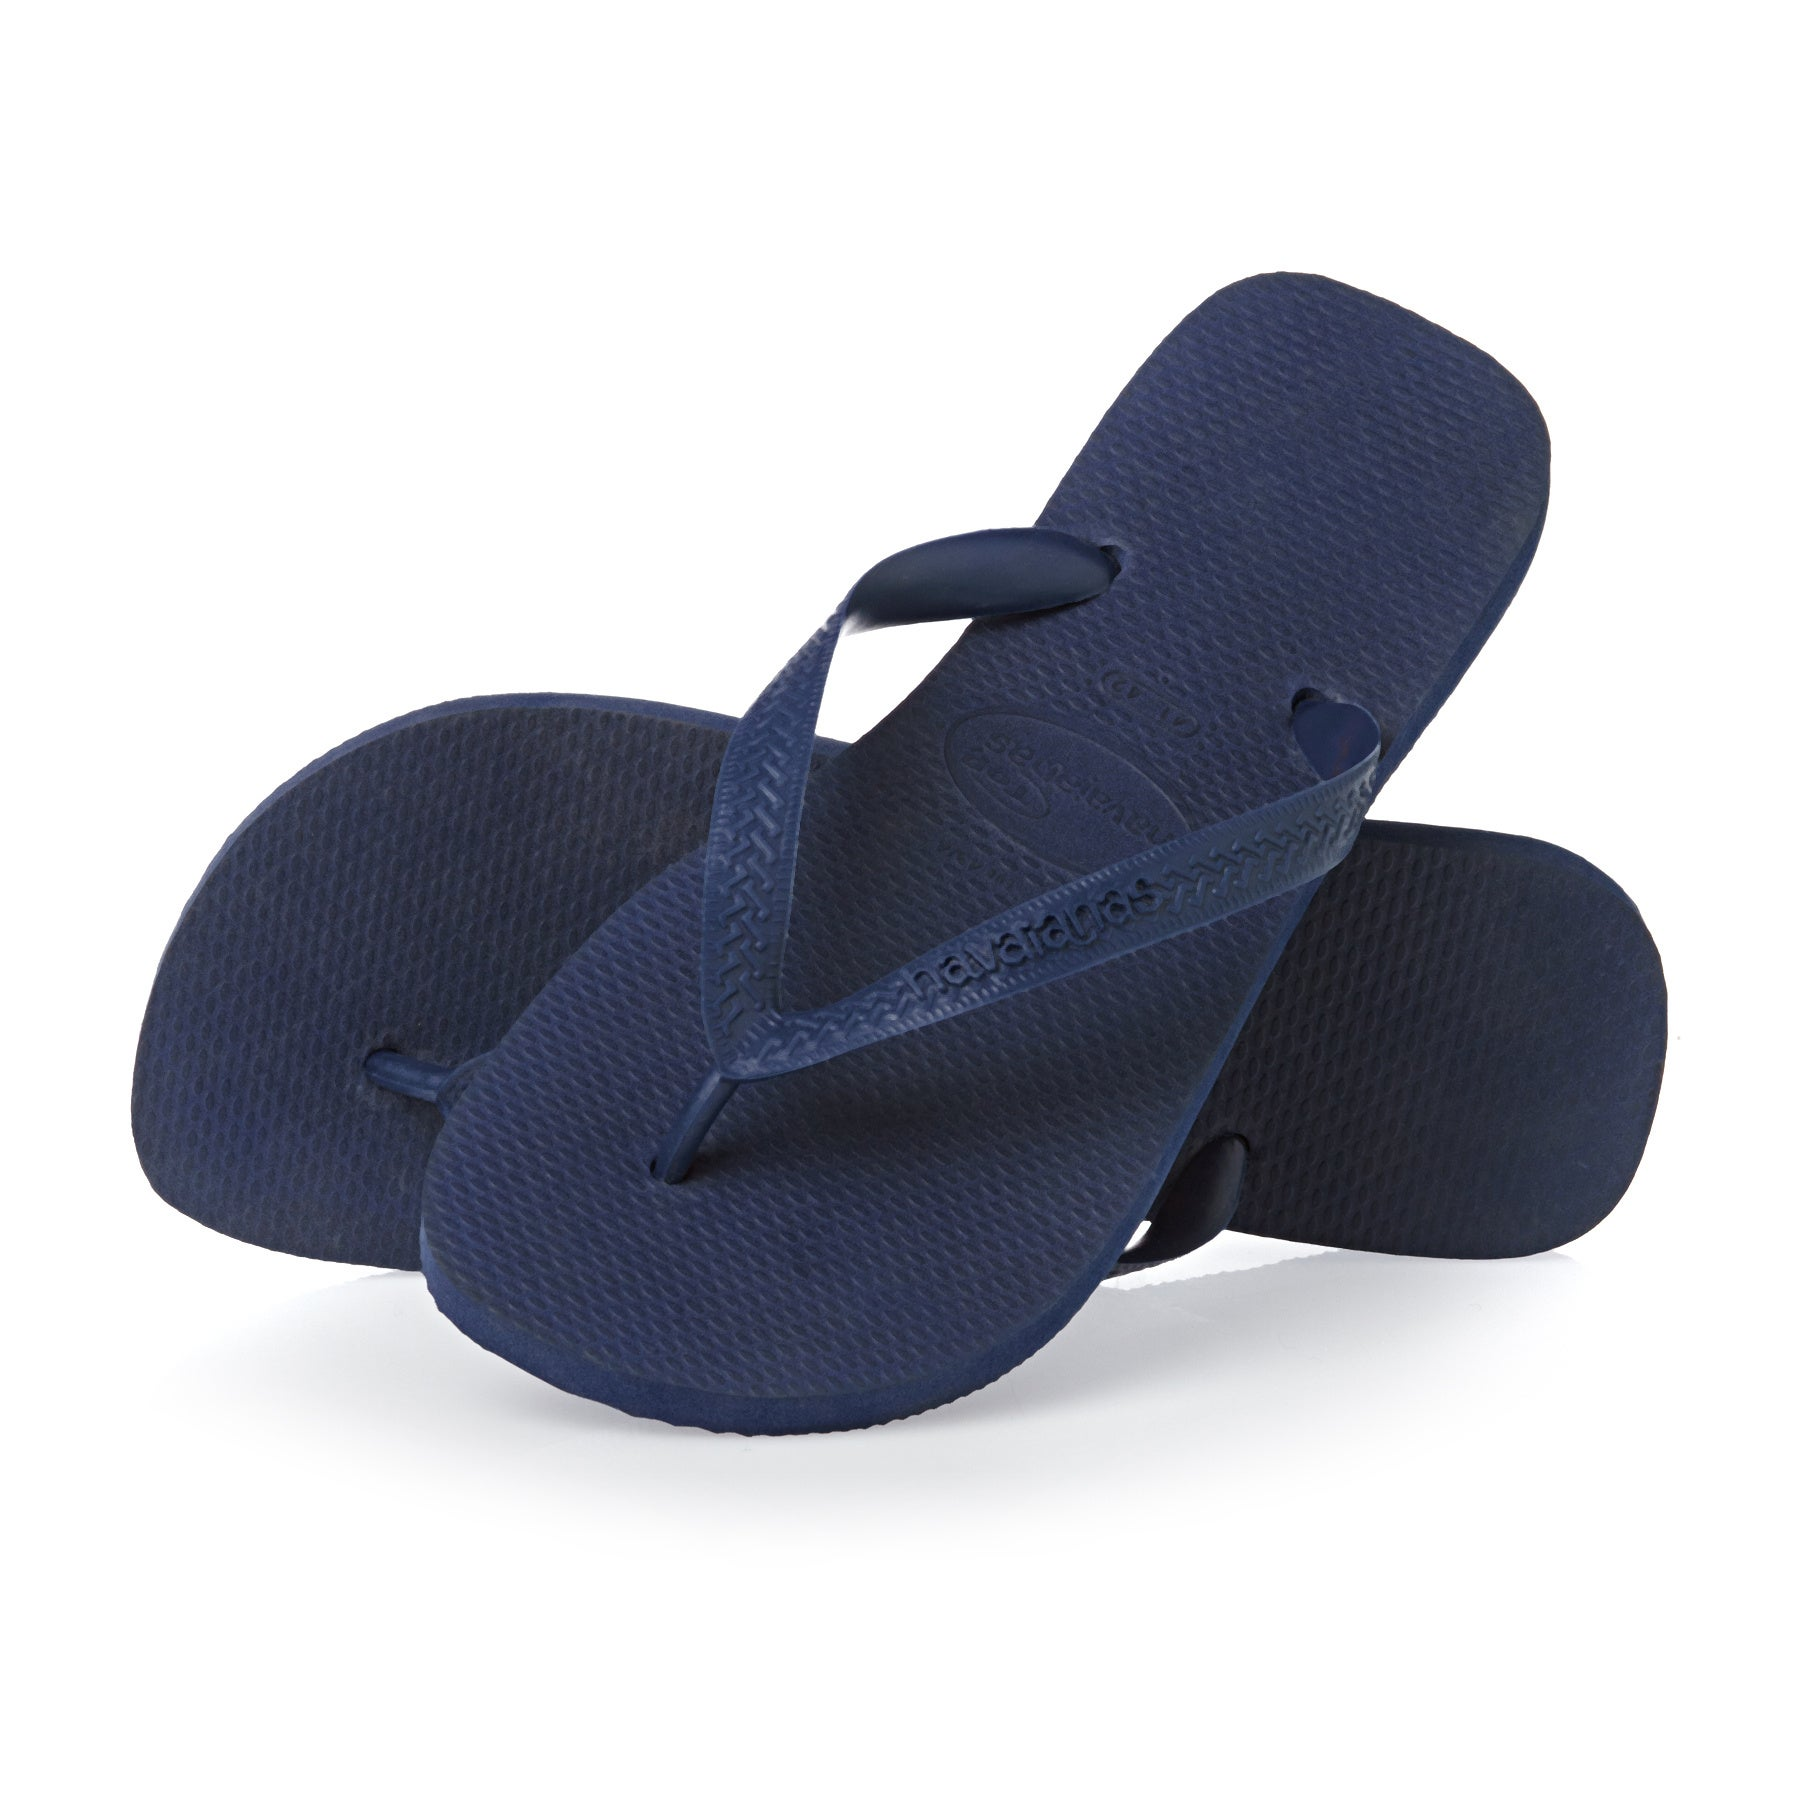 Havaianas Top Sandals - Navy Blue